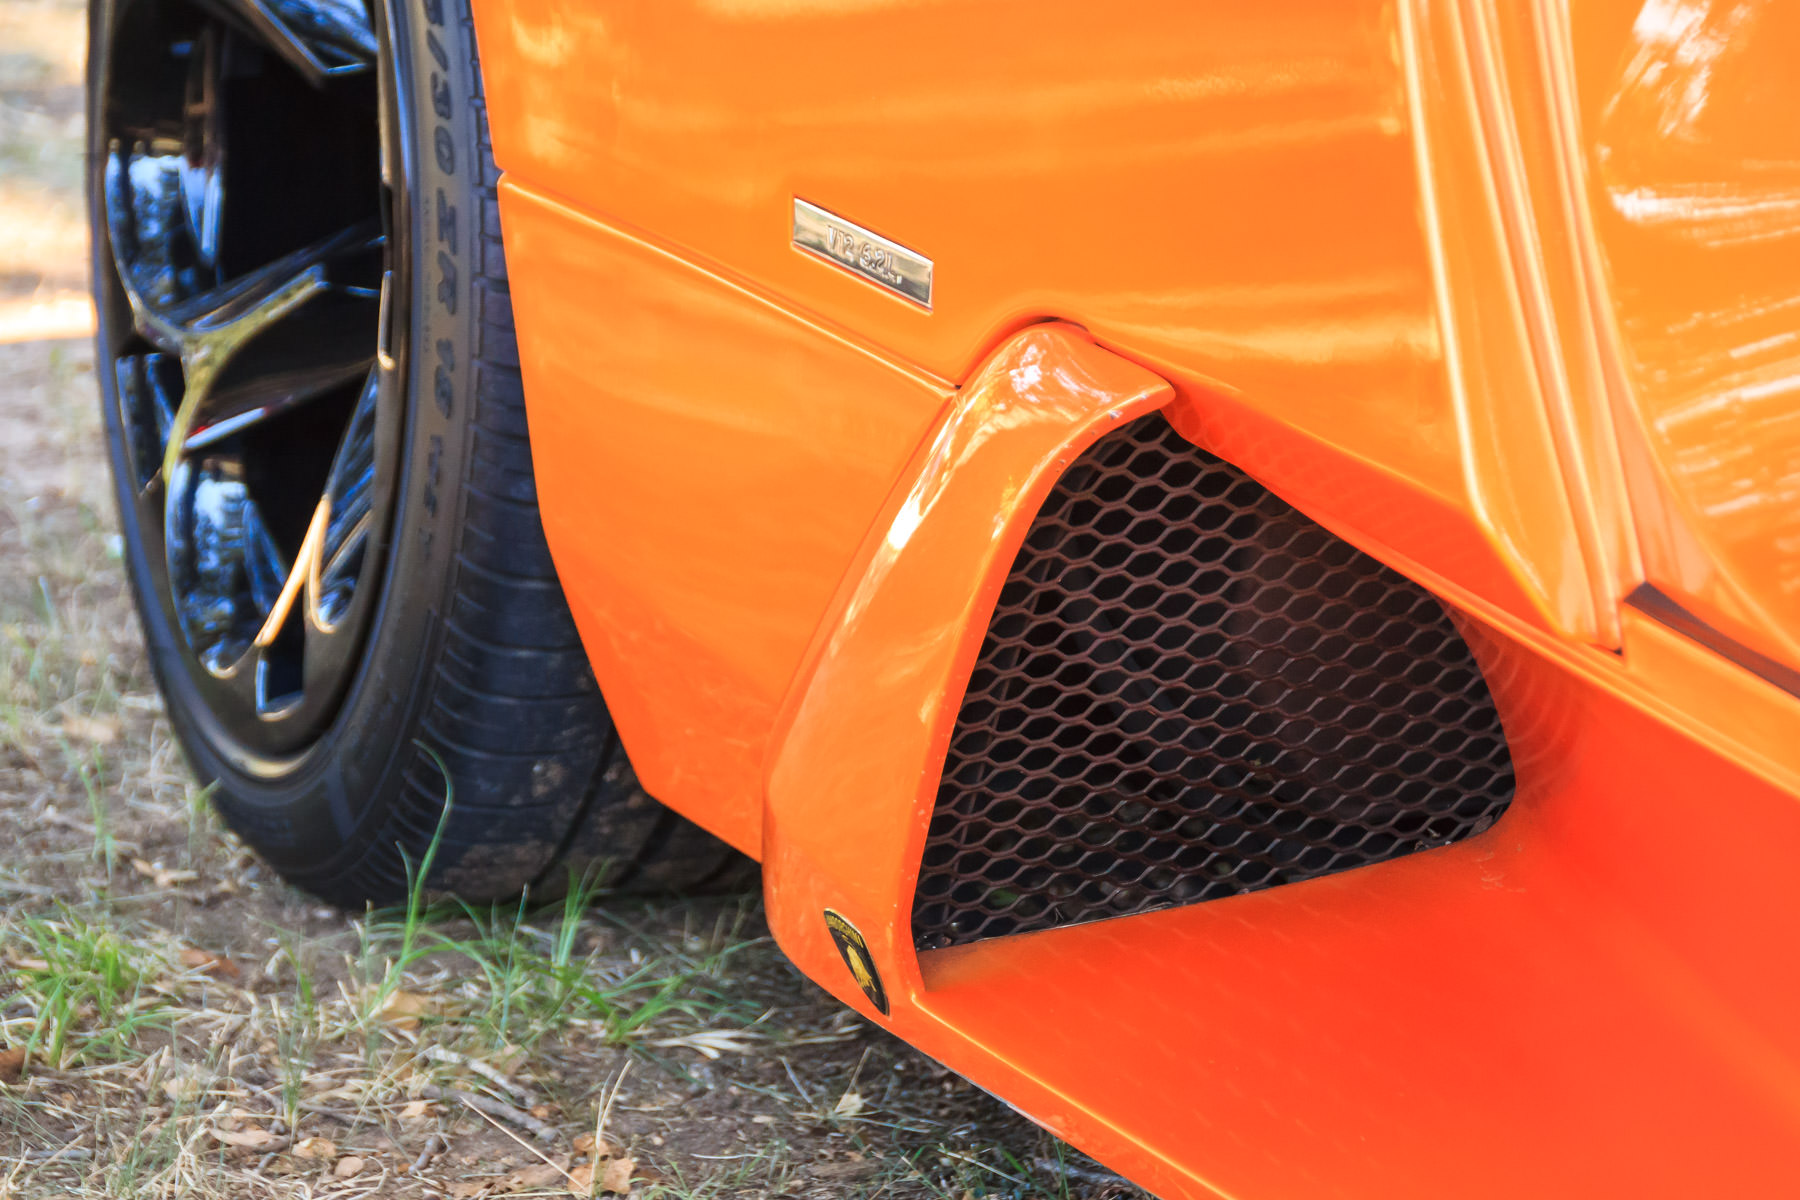 Detail of a Lamborghini Murciélago at ItalianCarFest in Grapevine, Texas.